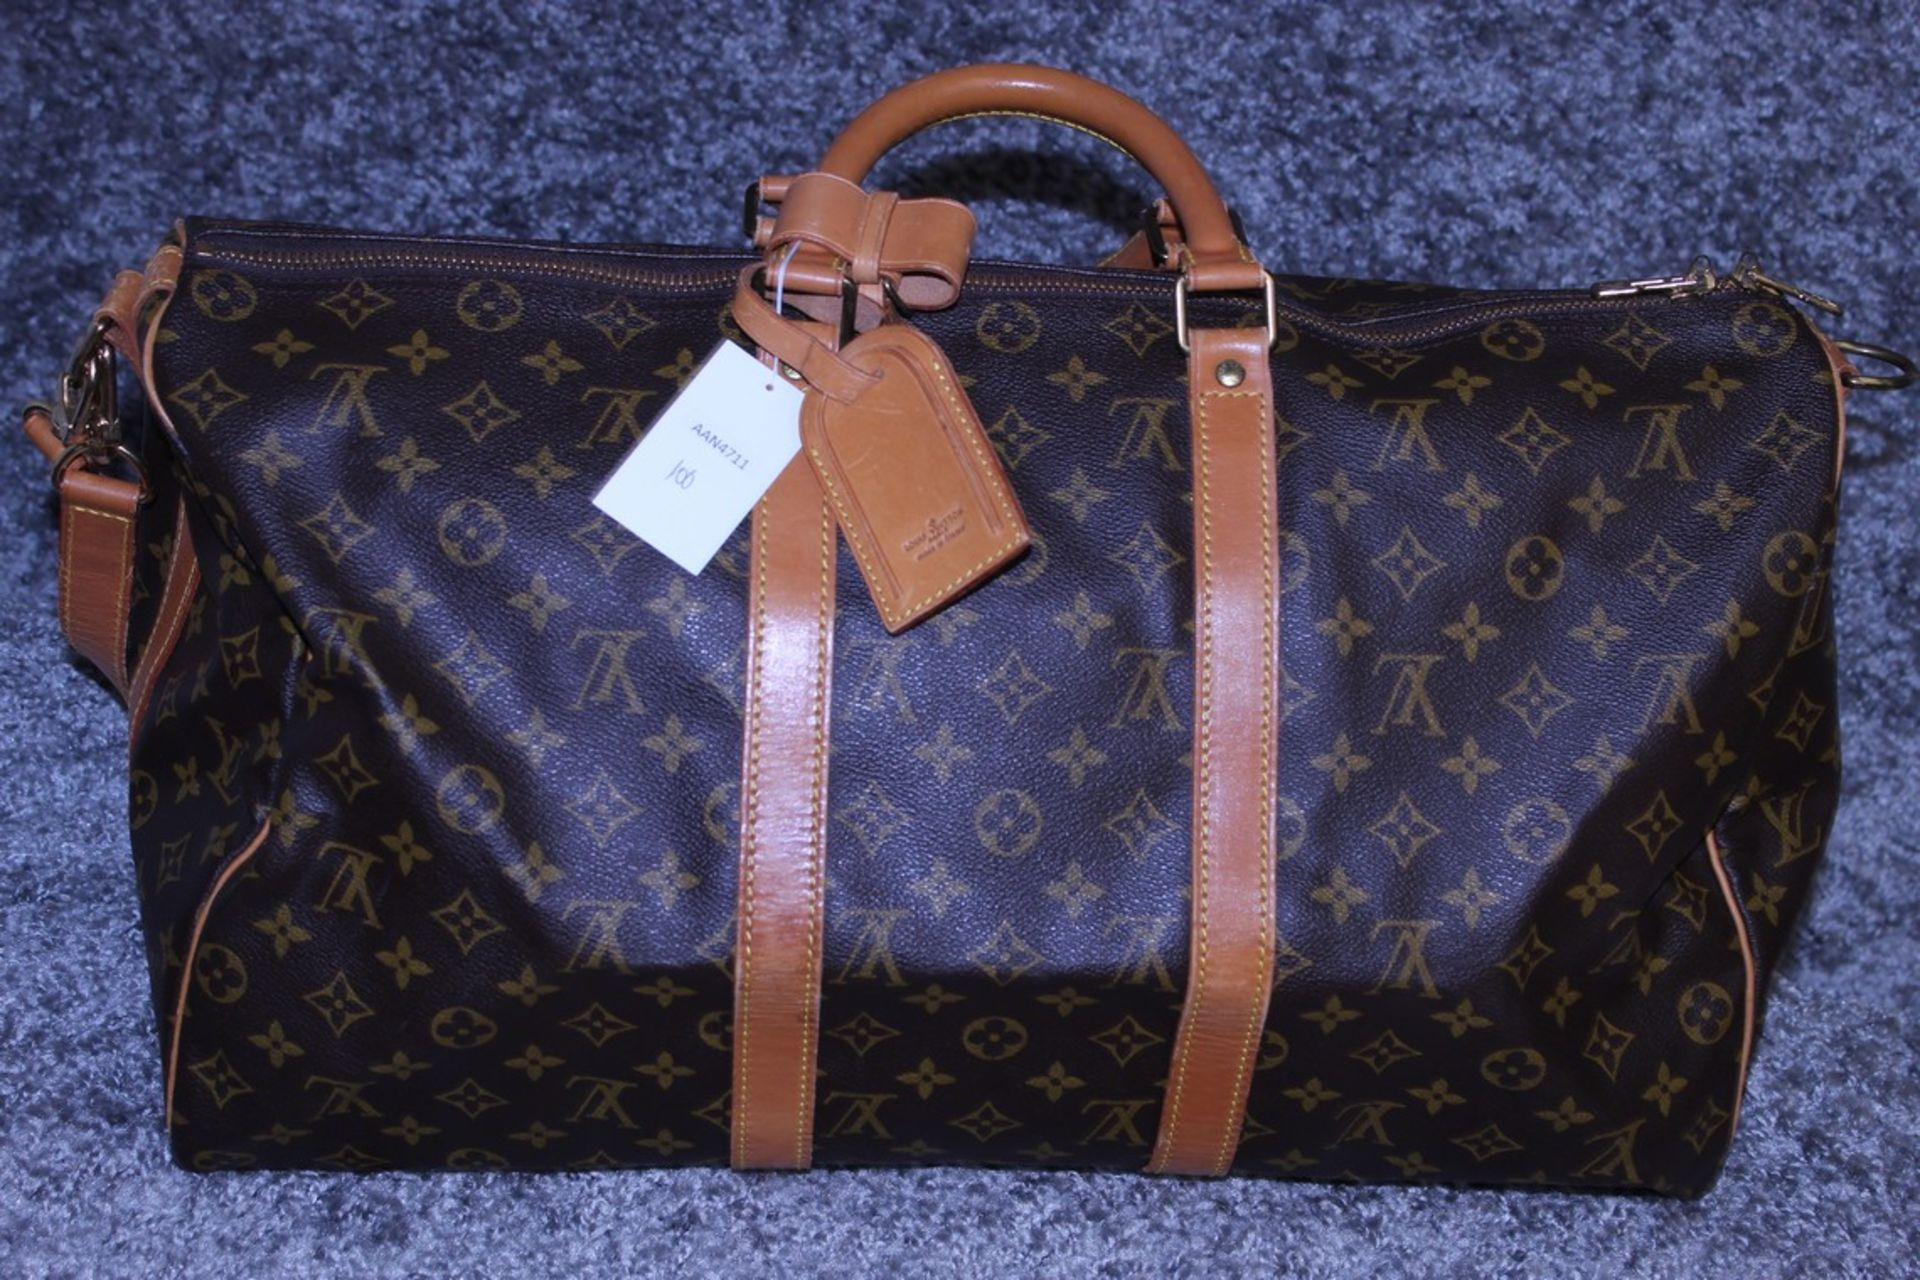 RRP 2,000 Louis Vuitton Keepall 50 Bandouliere Shoulder Bag, Brown Coated Canvas Monogram, - Image 2 of 6